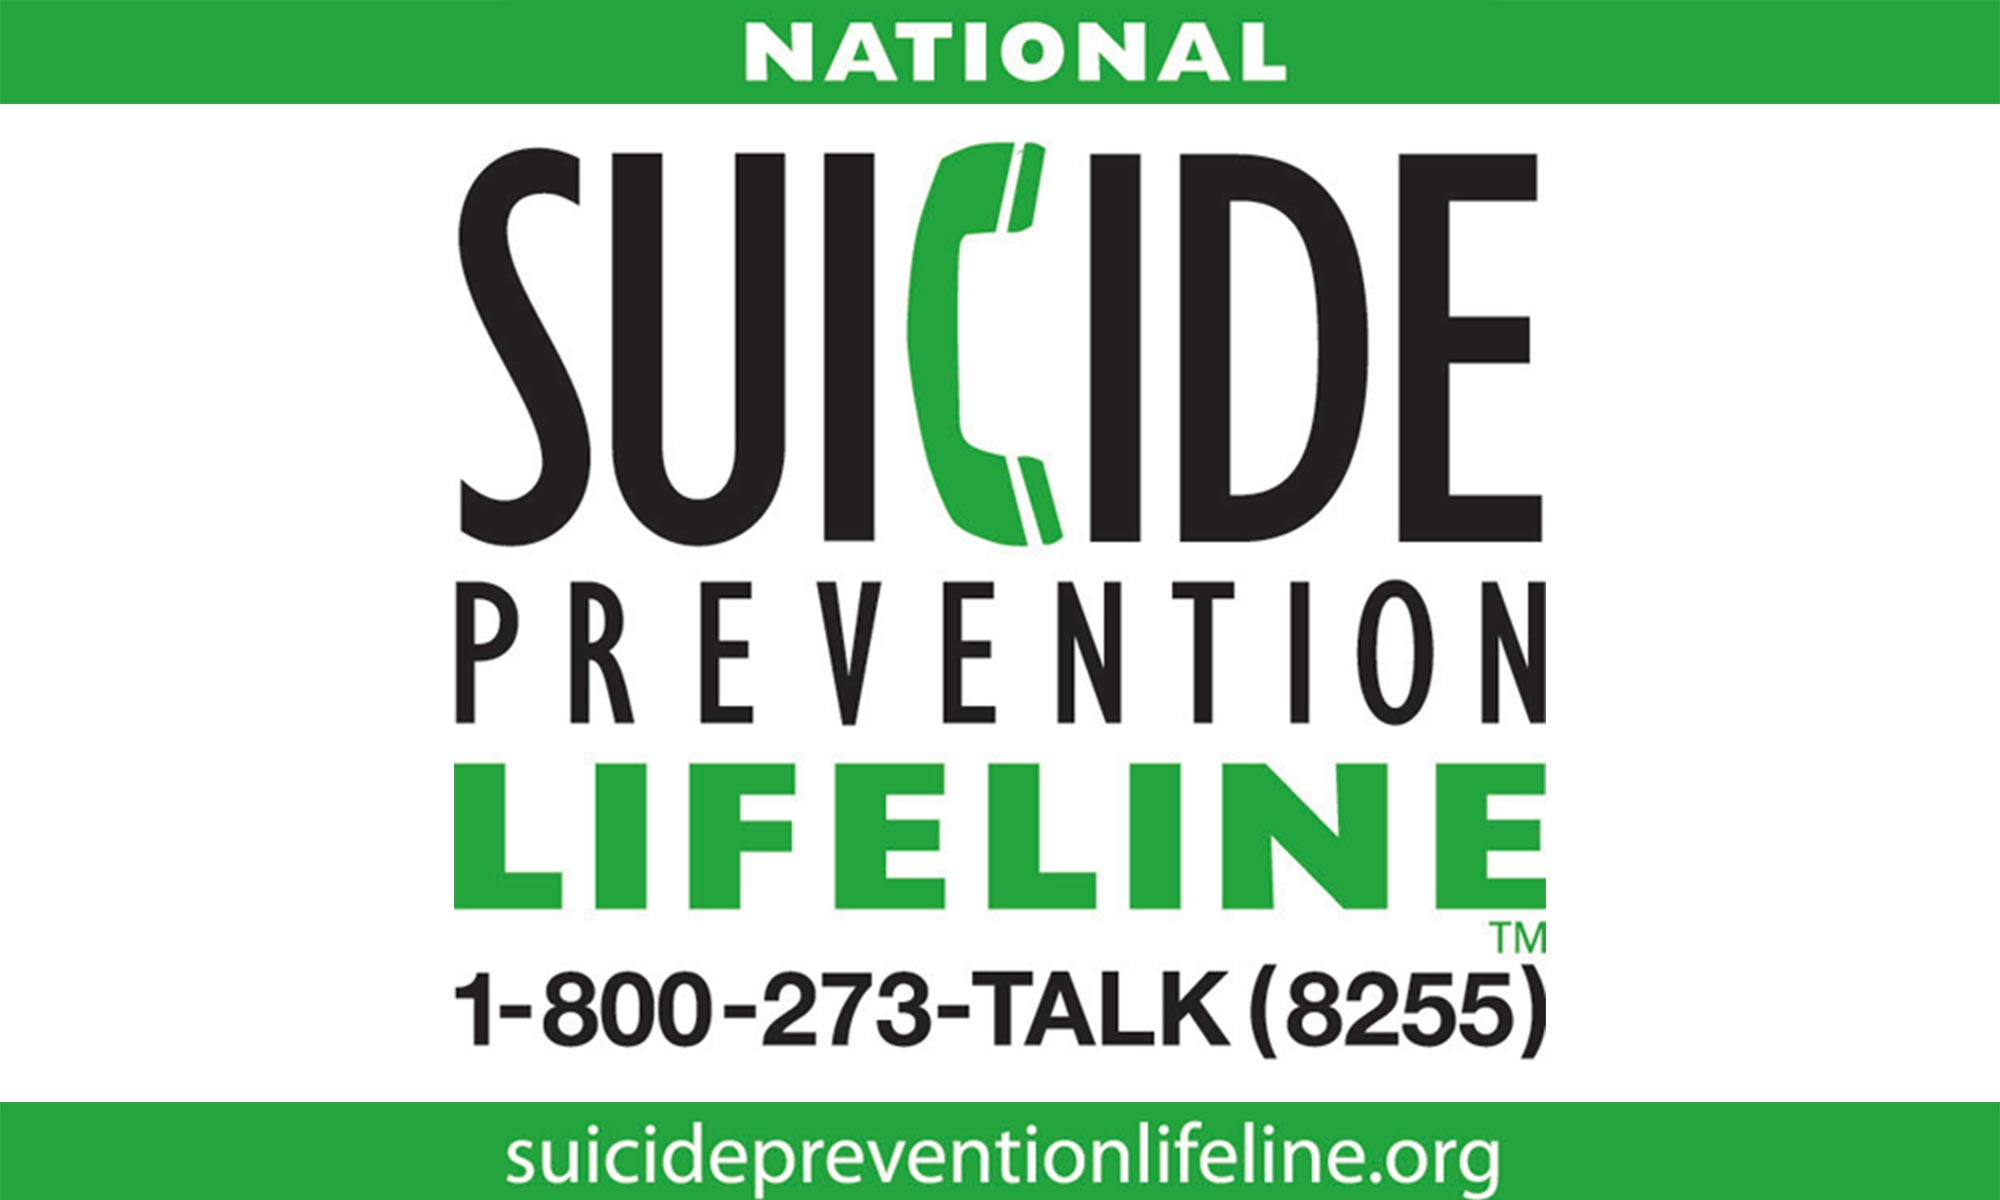 Suicide prevention. Click to learn more about this topic from the Student Wellness center, or call 972-883-8255. The National Suicide Prevention Lifeline can be reached at 1-800-273-8255 or suicidepreventionlifeline.org.